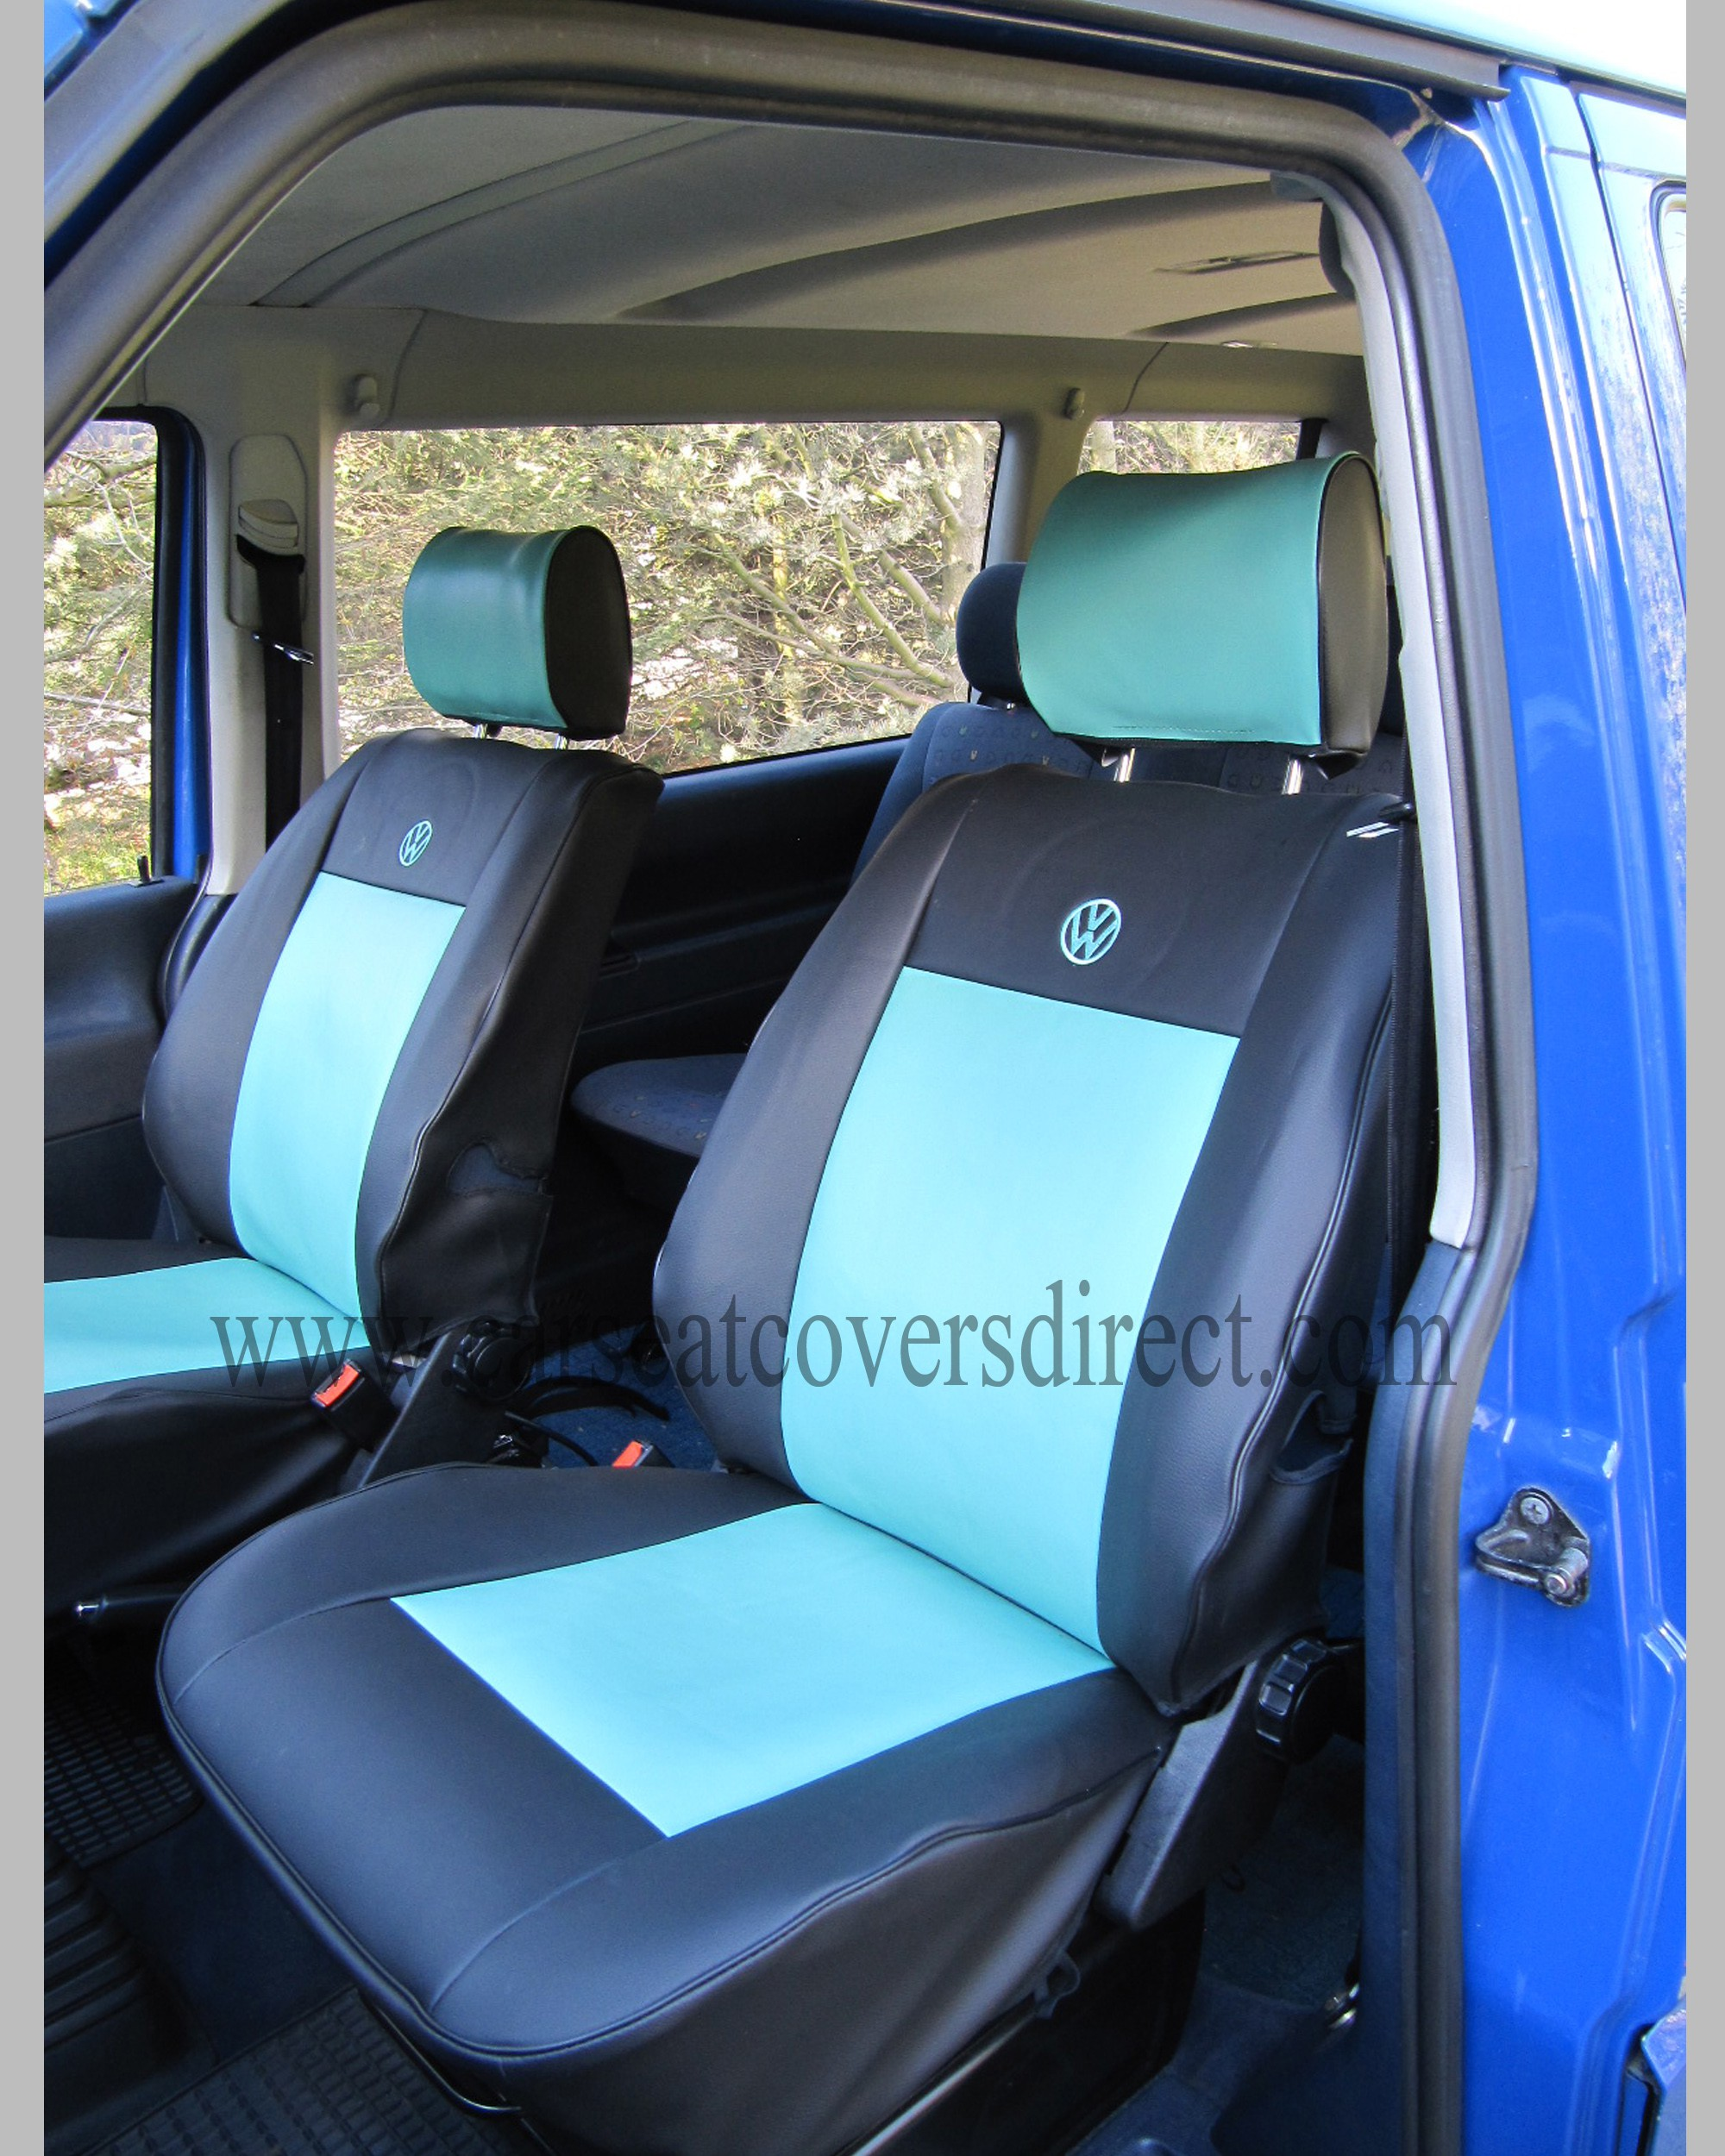 VW T4 Seat Covers - Blue & Black Car Seat Covers Direct - Tailored To Your Choice